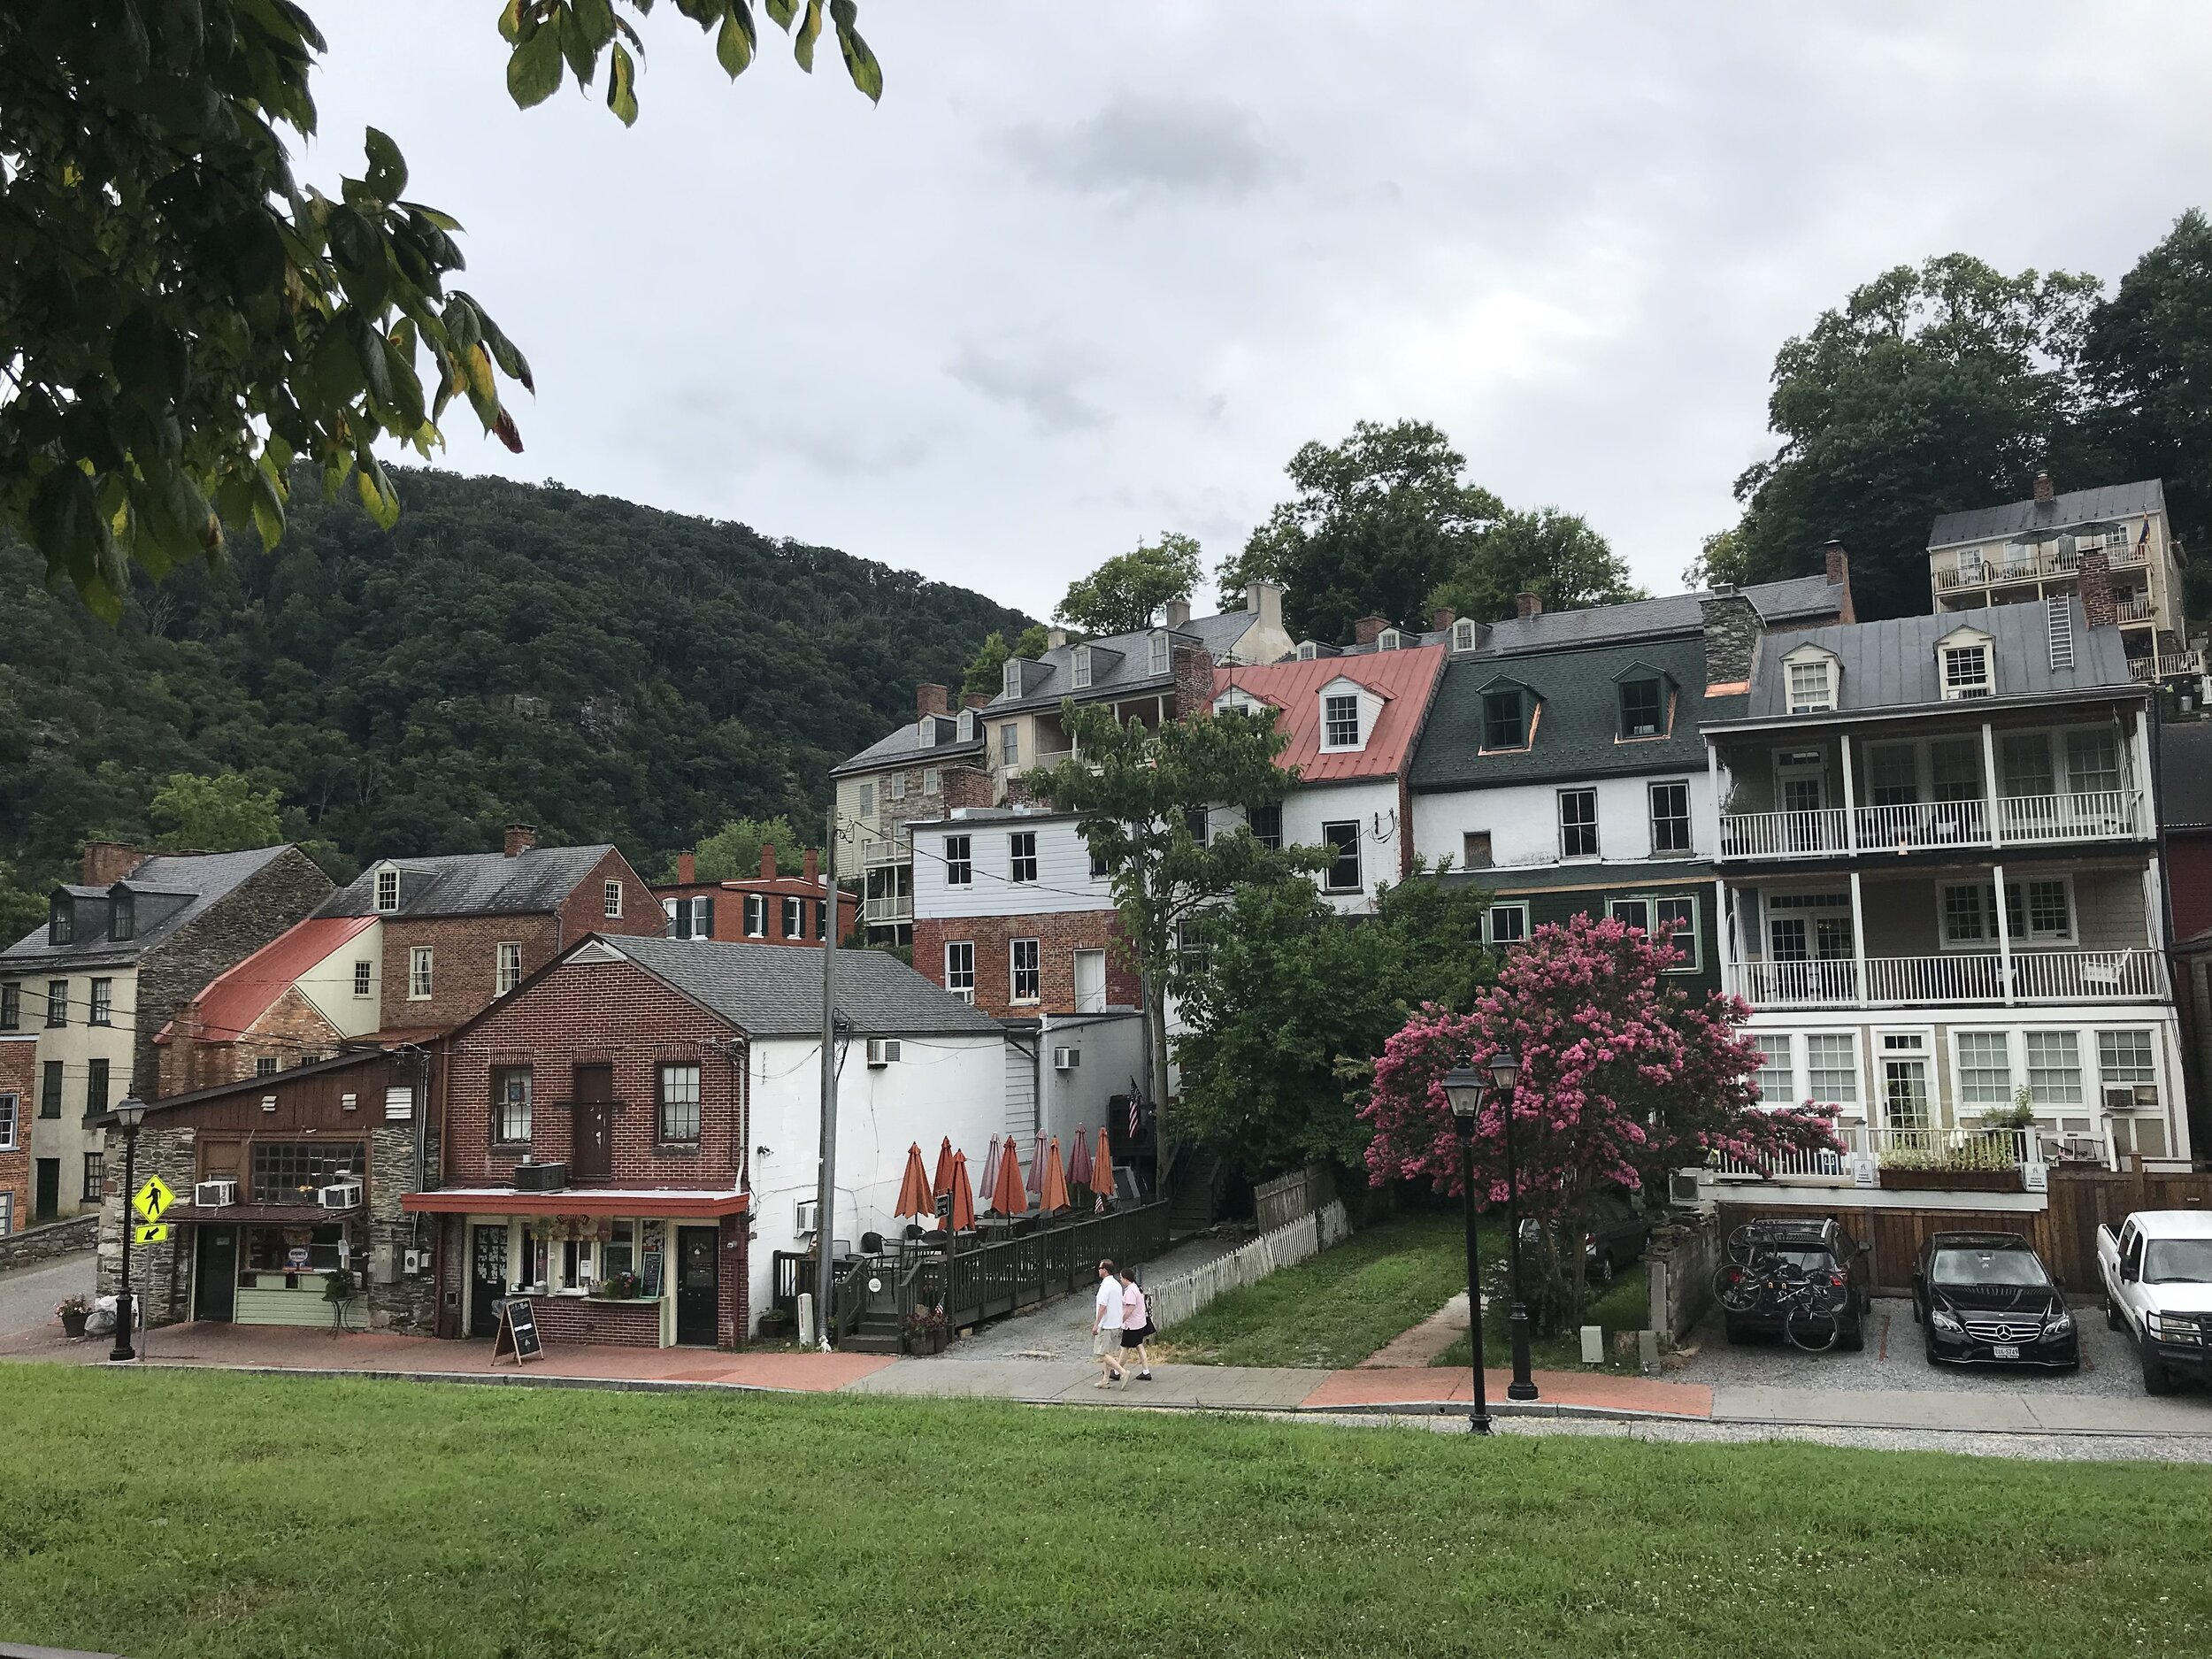 The A.T. goes right through the town of Harpers Ferry.